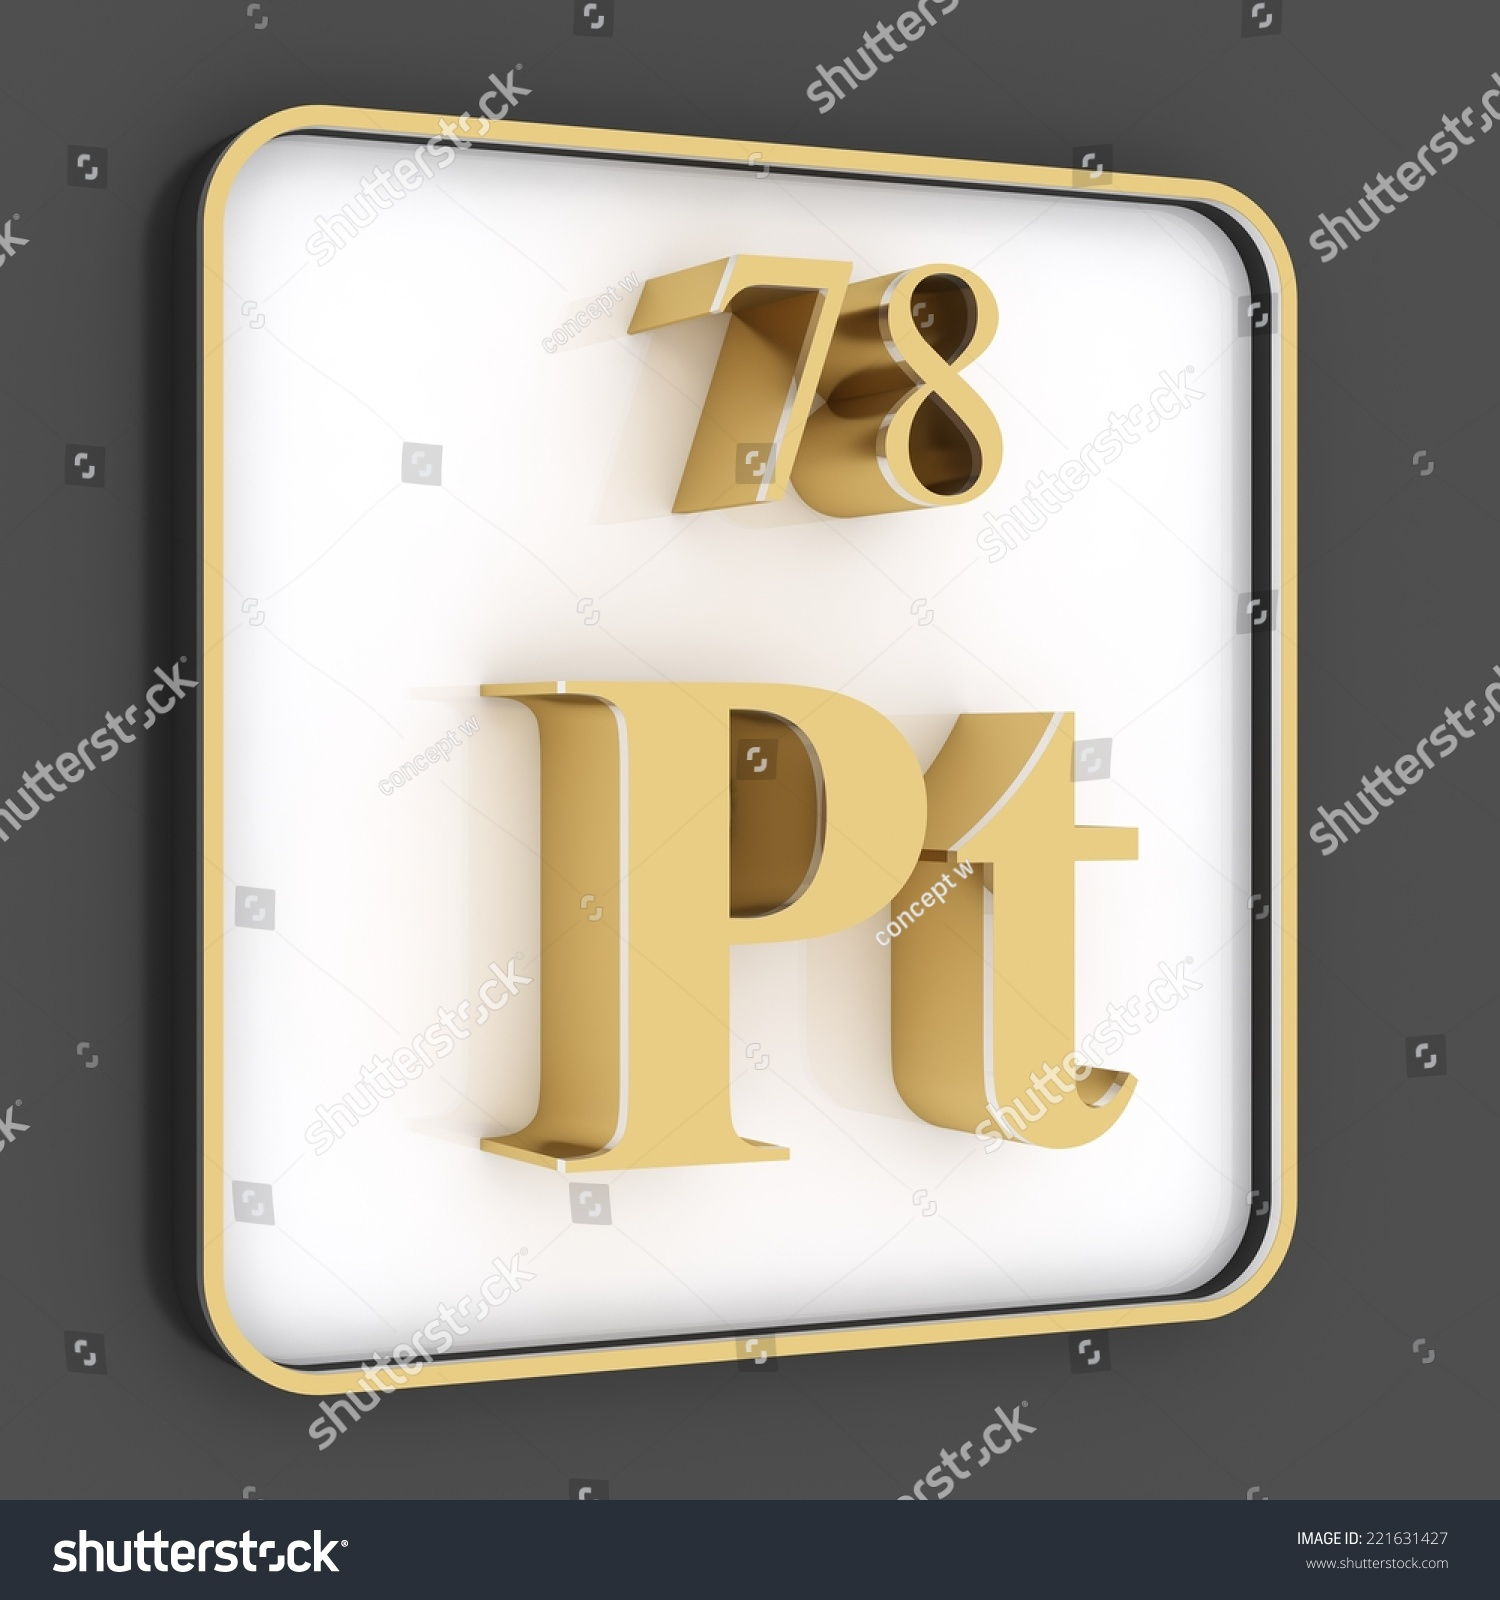 Platinum periodic table facts gallery periodic table images platinum periodic table facts images periodic table images hobart k12 periodic table image collections periodic table gamestrikefo Image collections